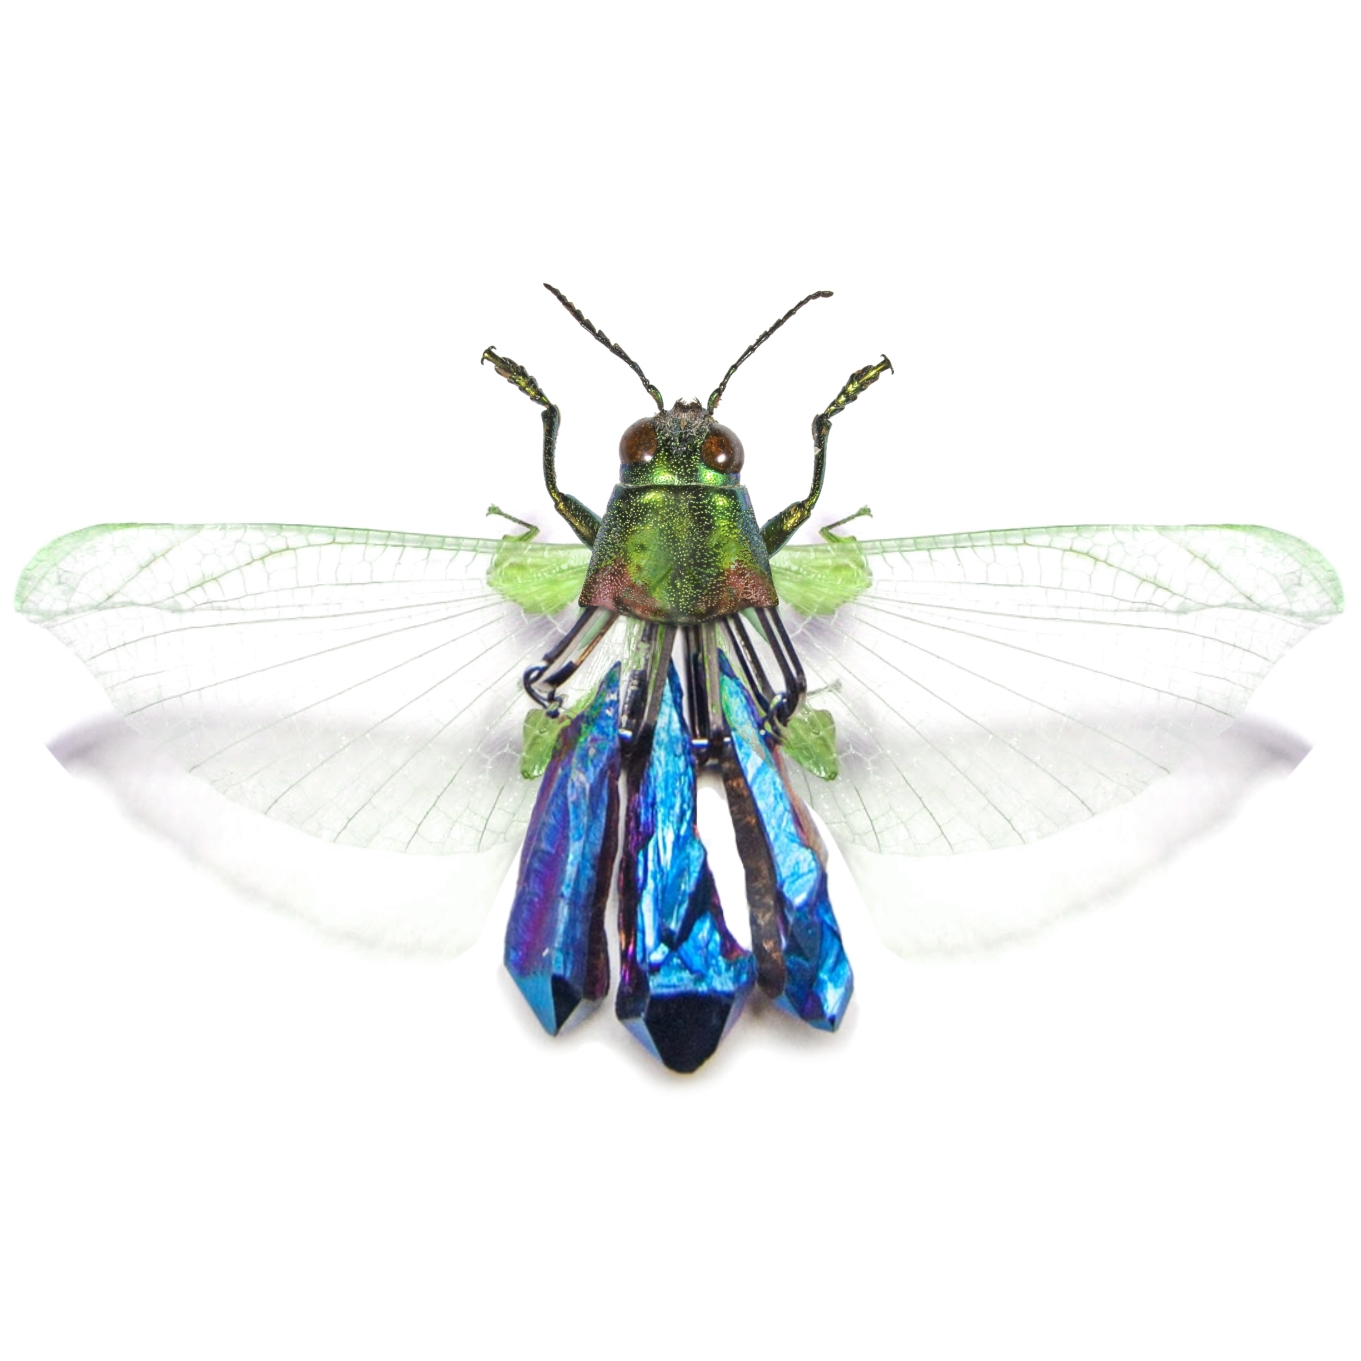 WildMoon_SS15_Insects_0003.jpg